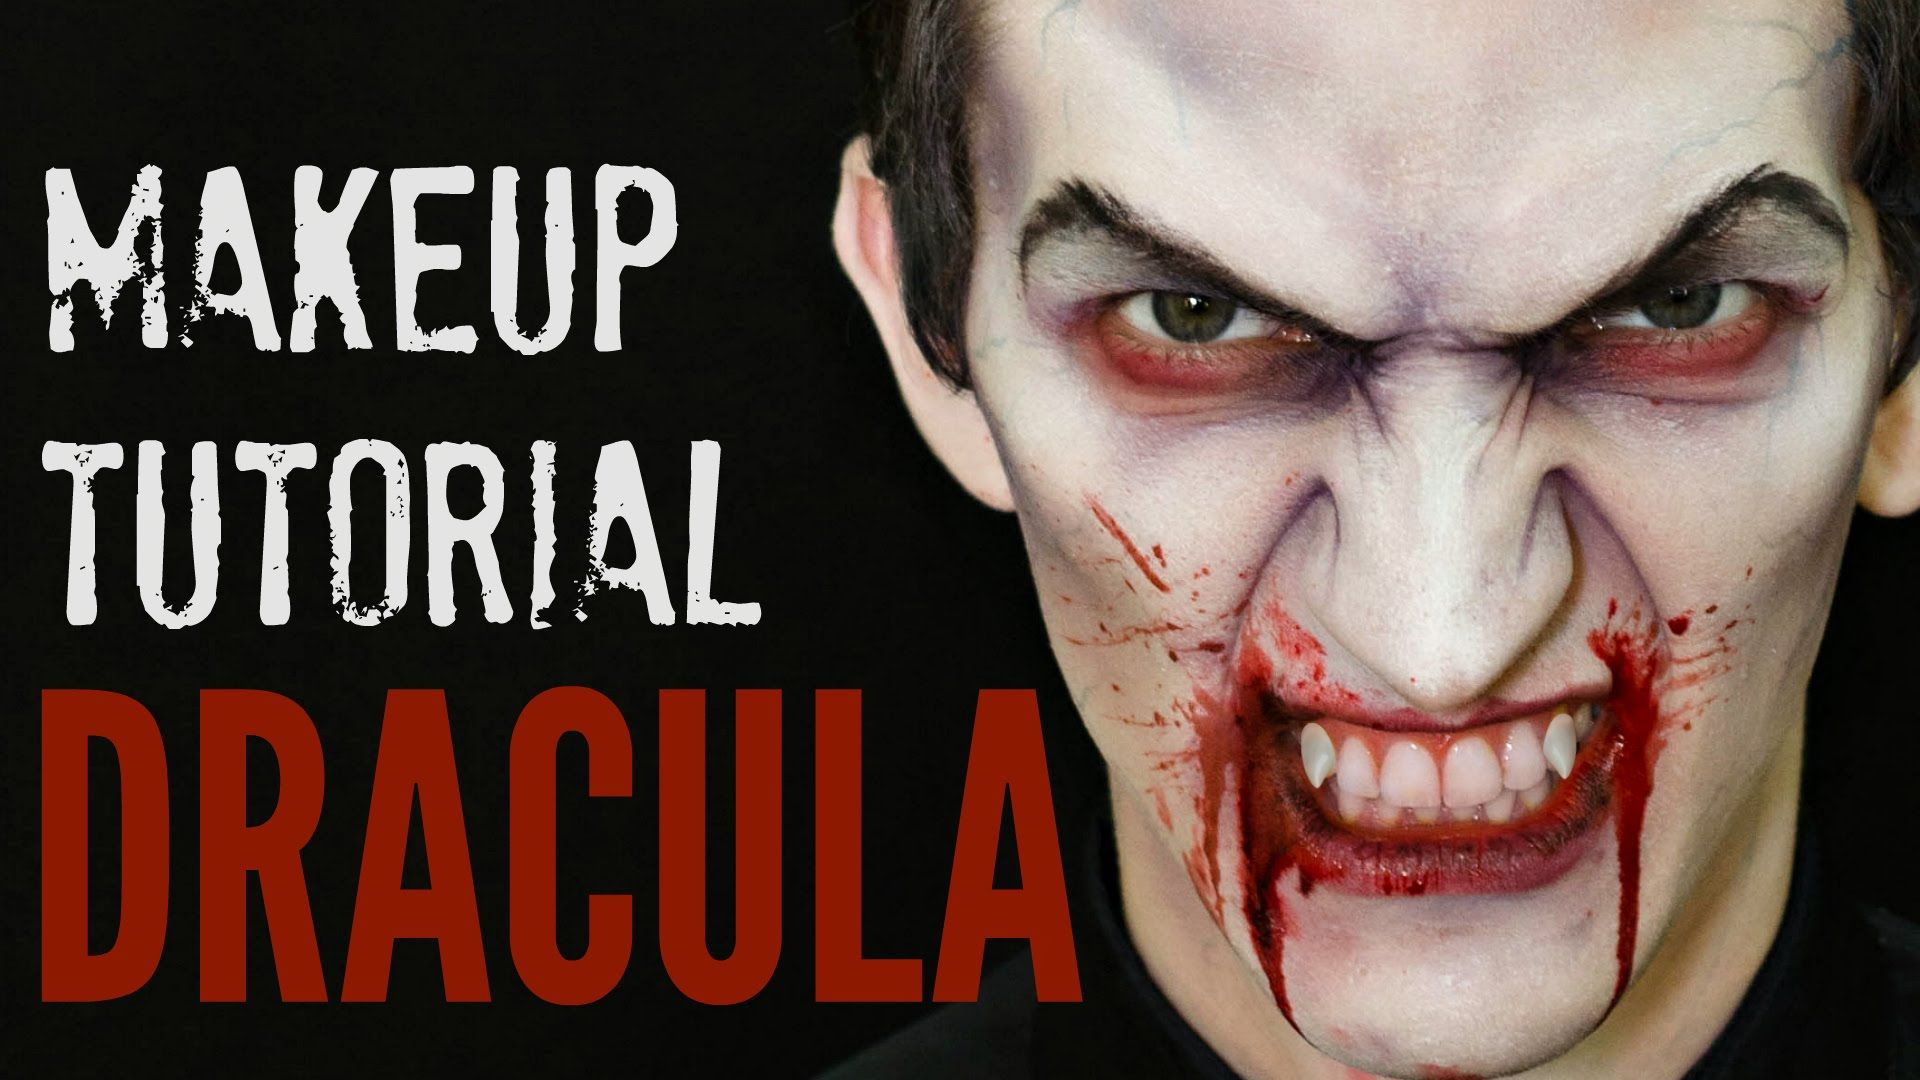 Dracula Halloween makeup tutorial for guys, for man, for